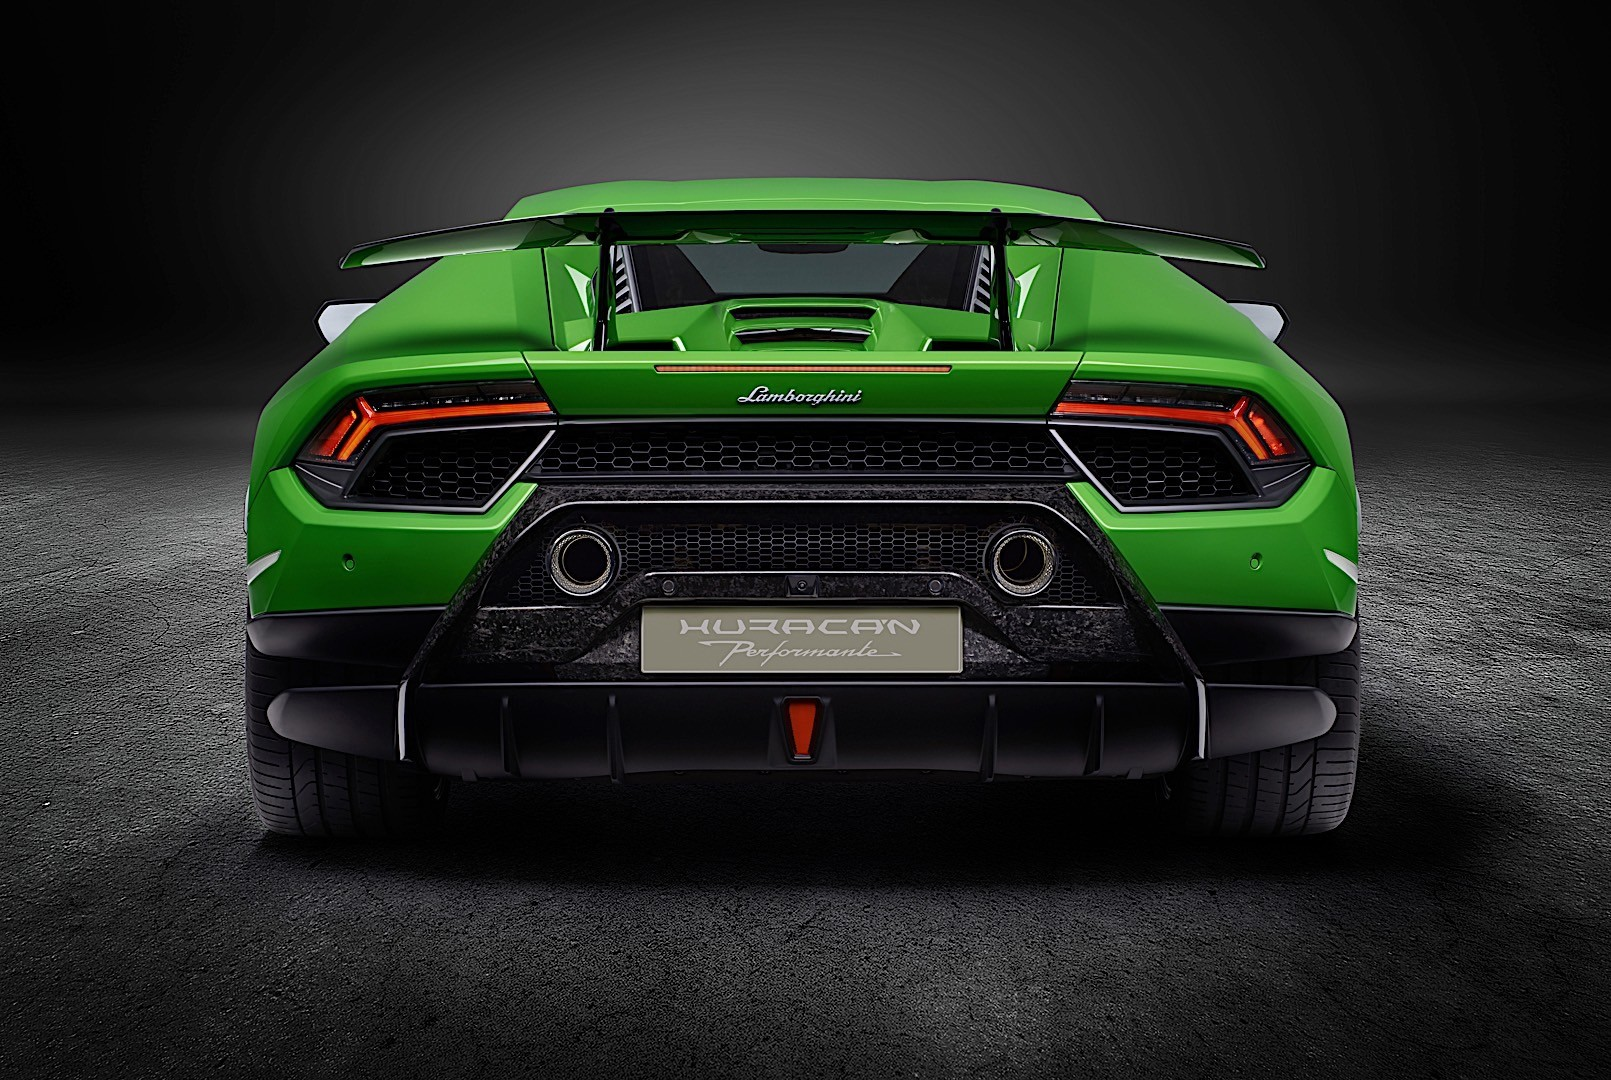 2019 lamborghini huracan expected to get rear-wheel steering